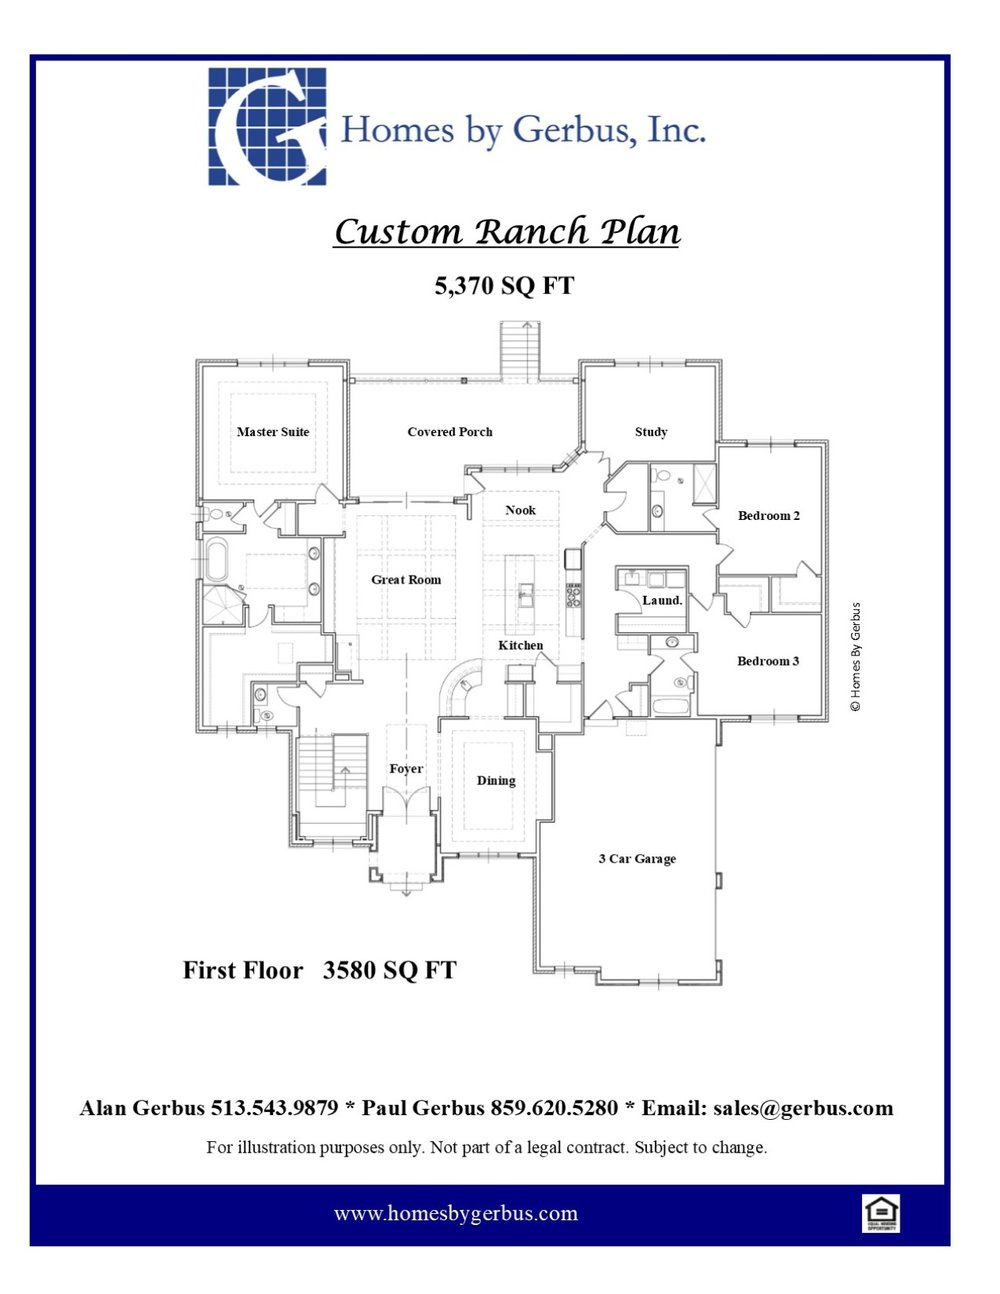 Custom Ranch Satyavolu brochure format first floor jpeg.jpg